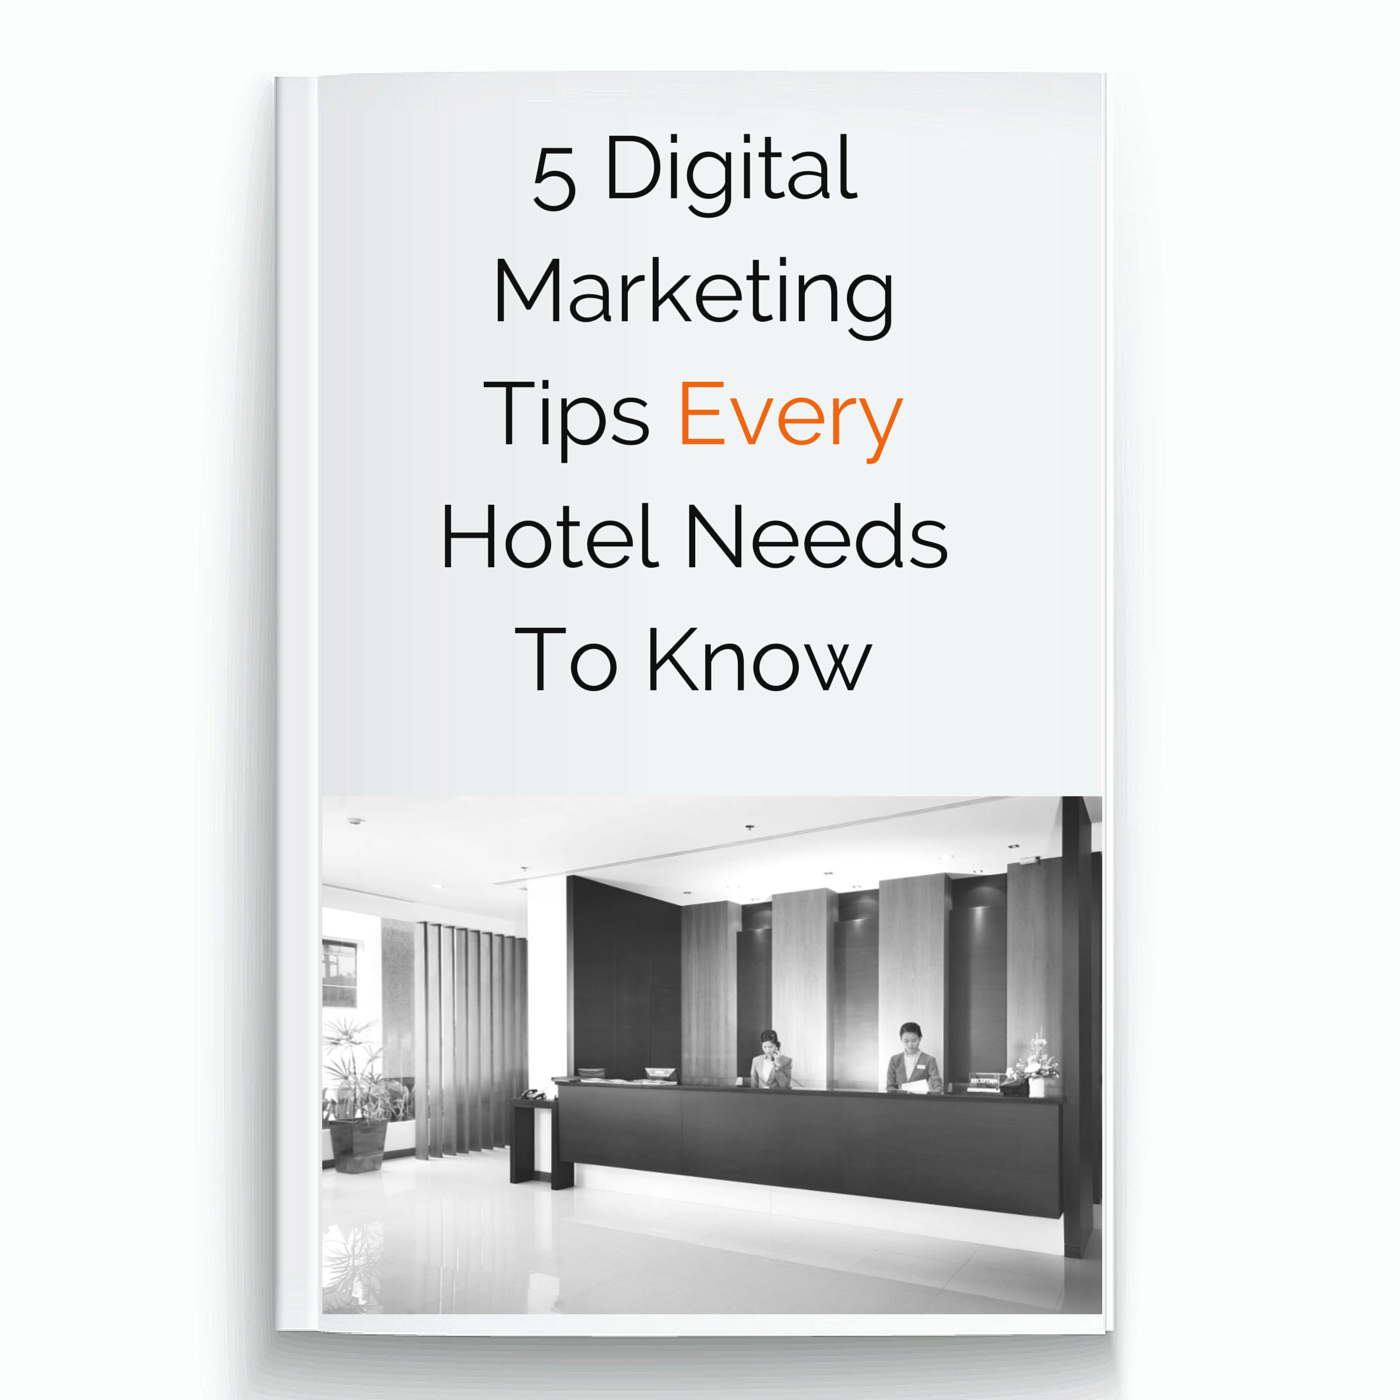 Hotel-marketing-e-book